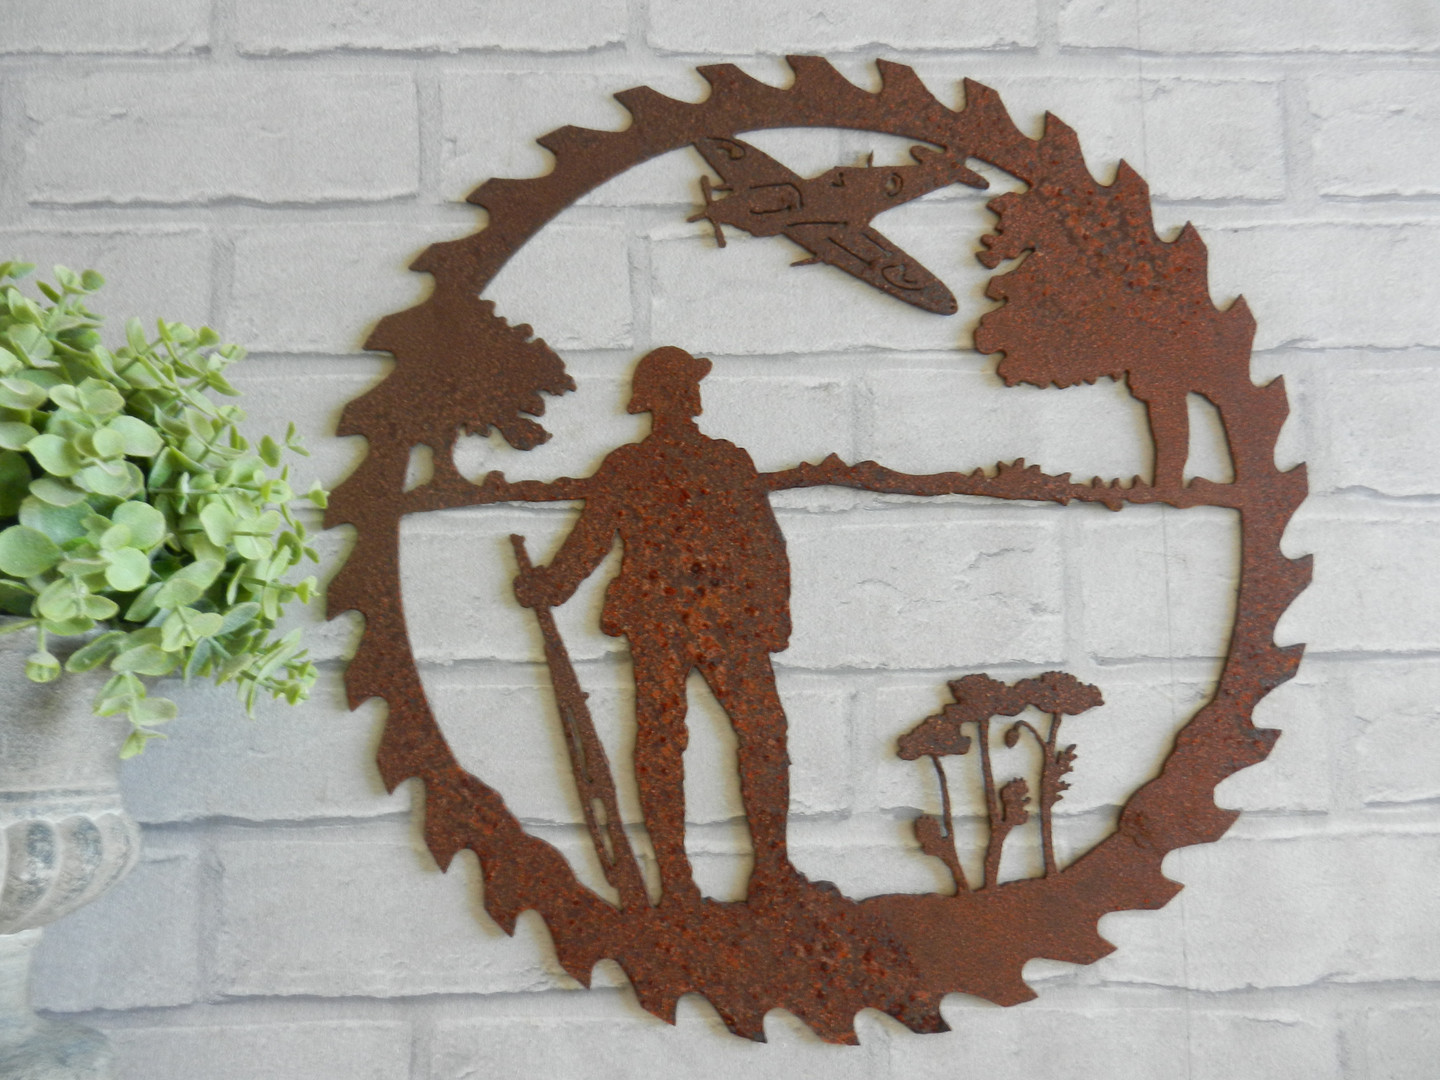 WW2 wall decoration